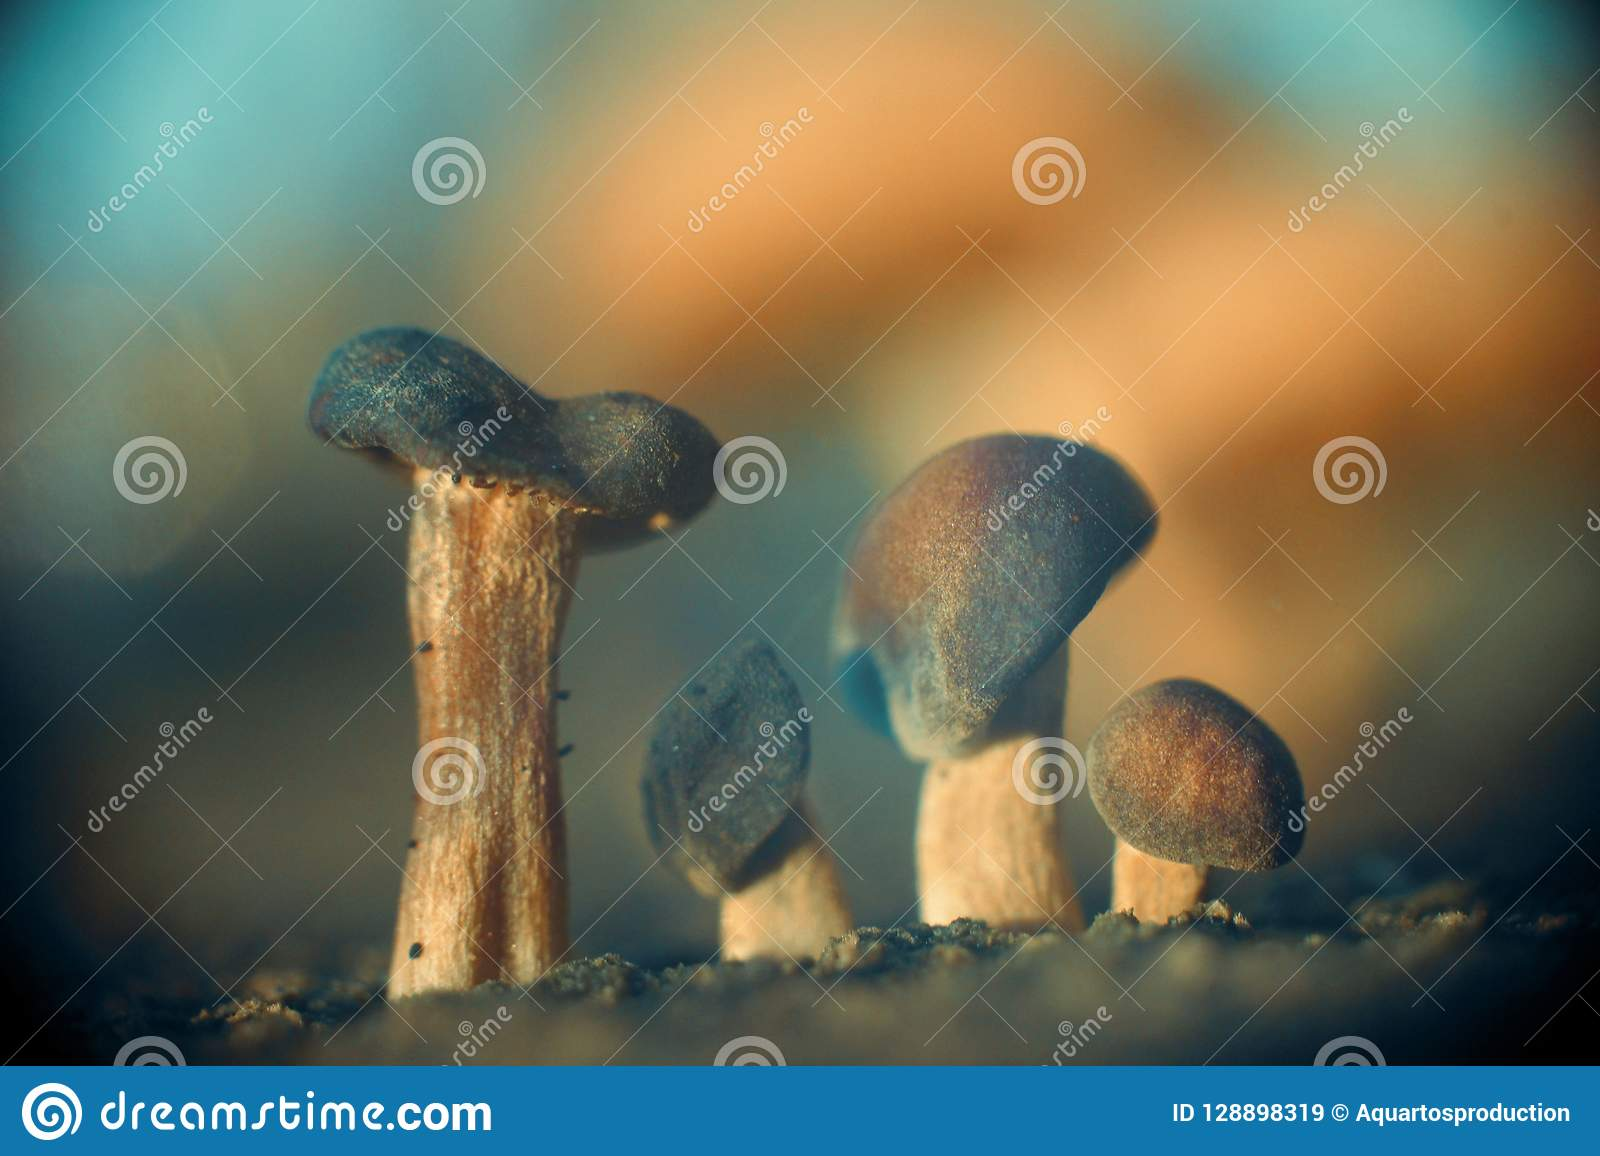 Four Mushroom Brothers Abstract Nature Background